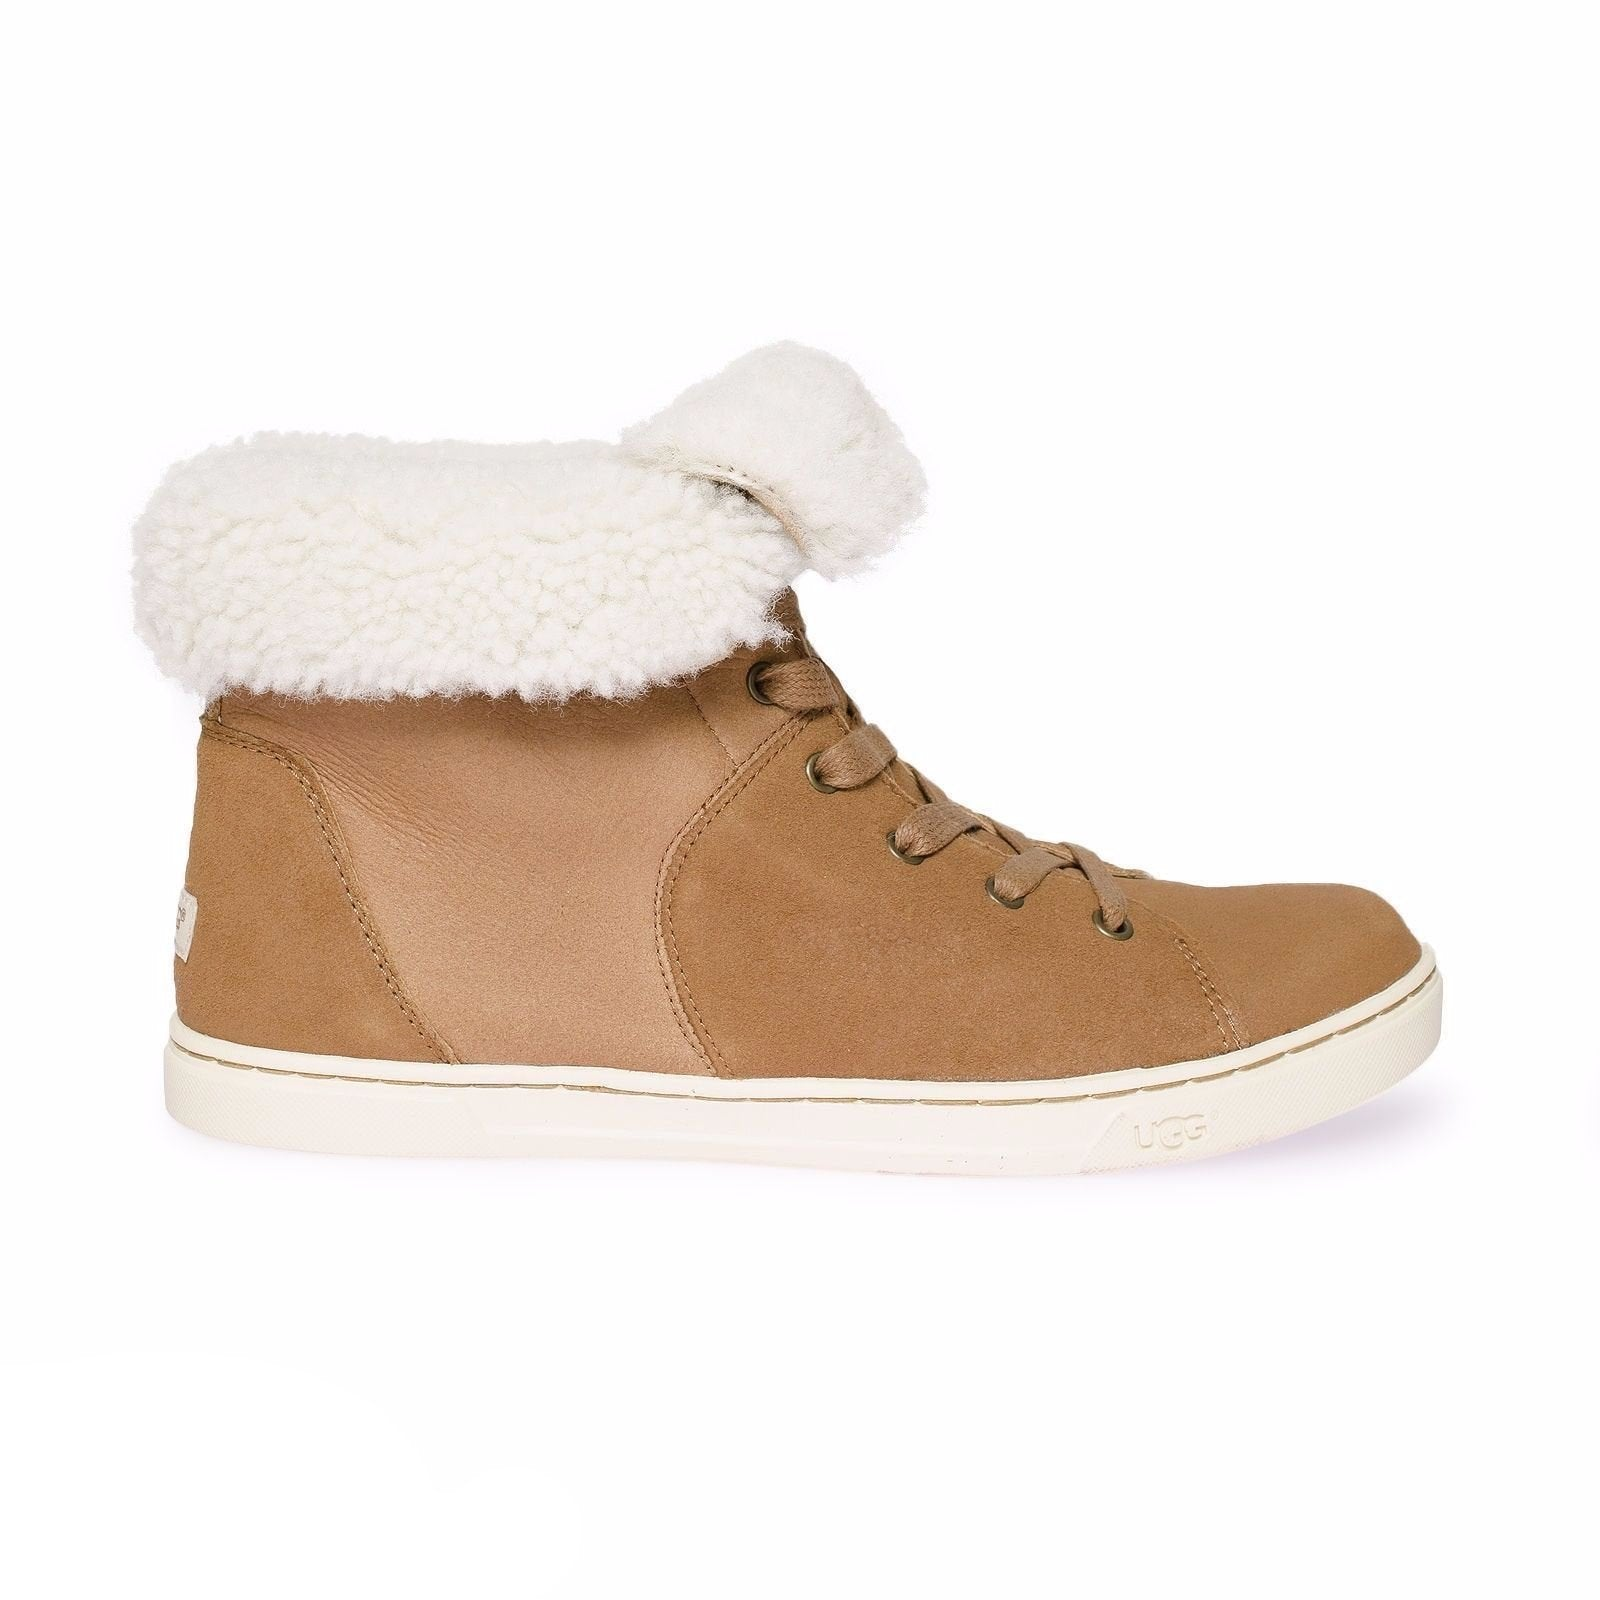 c95db673674 UGG Croft Chestnut Shoes